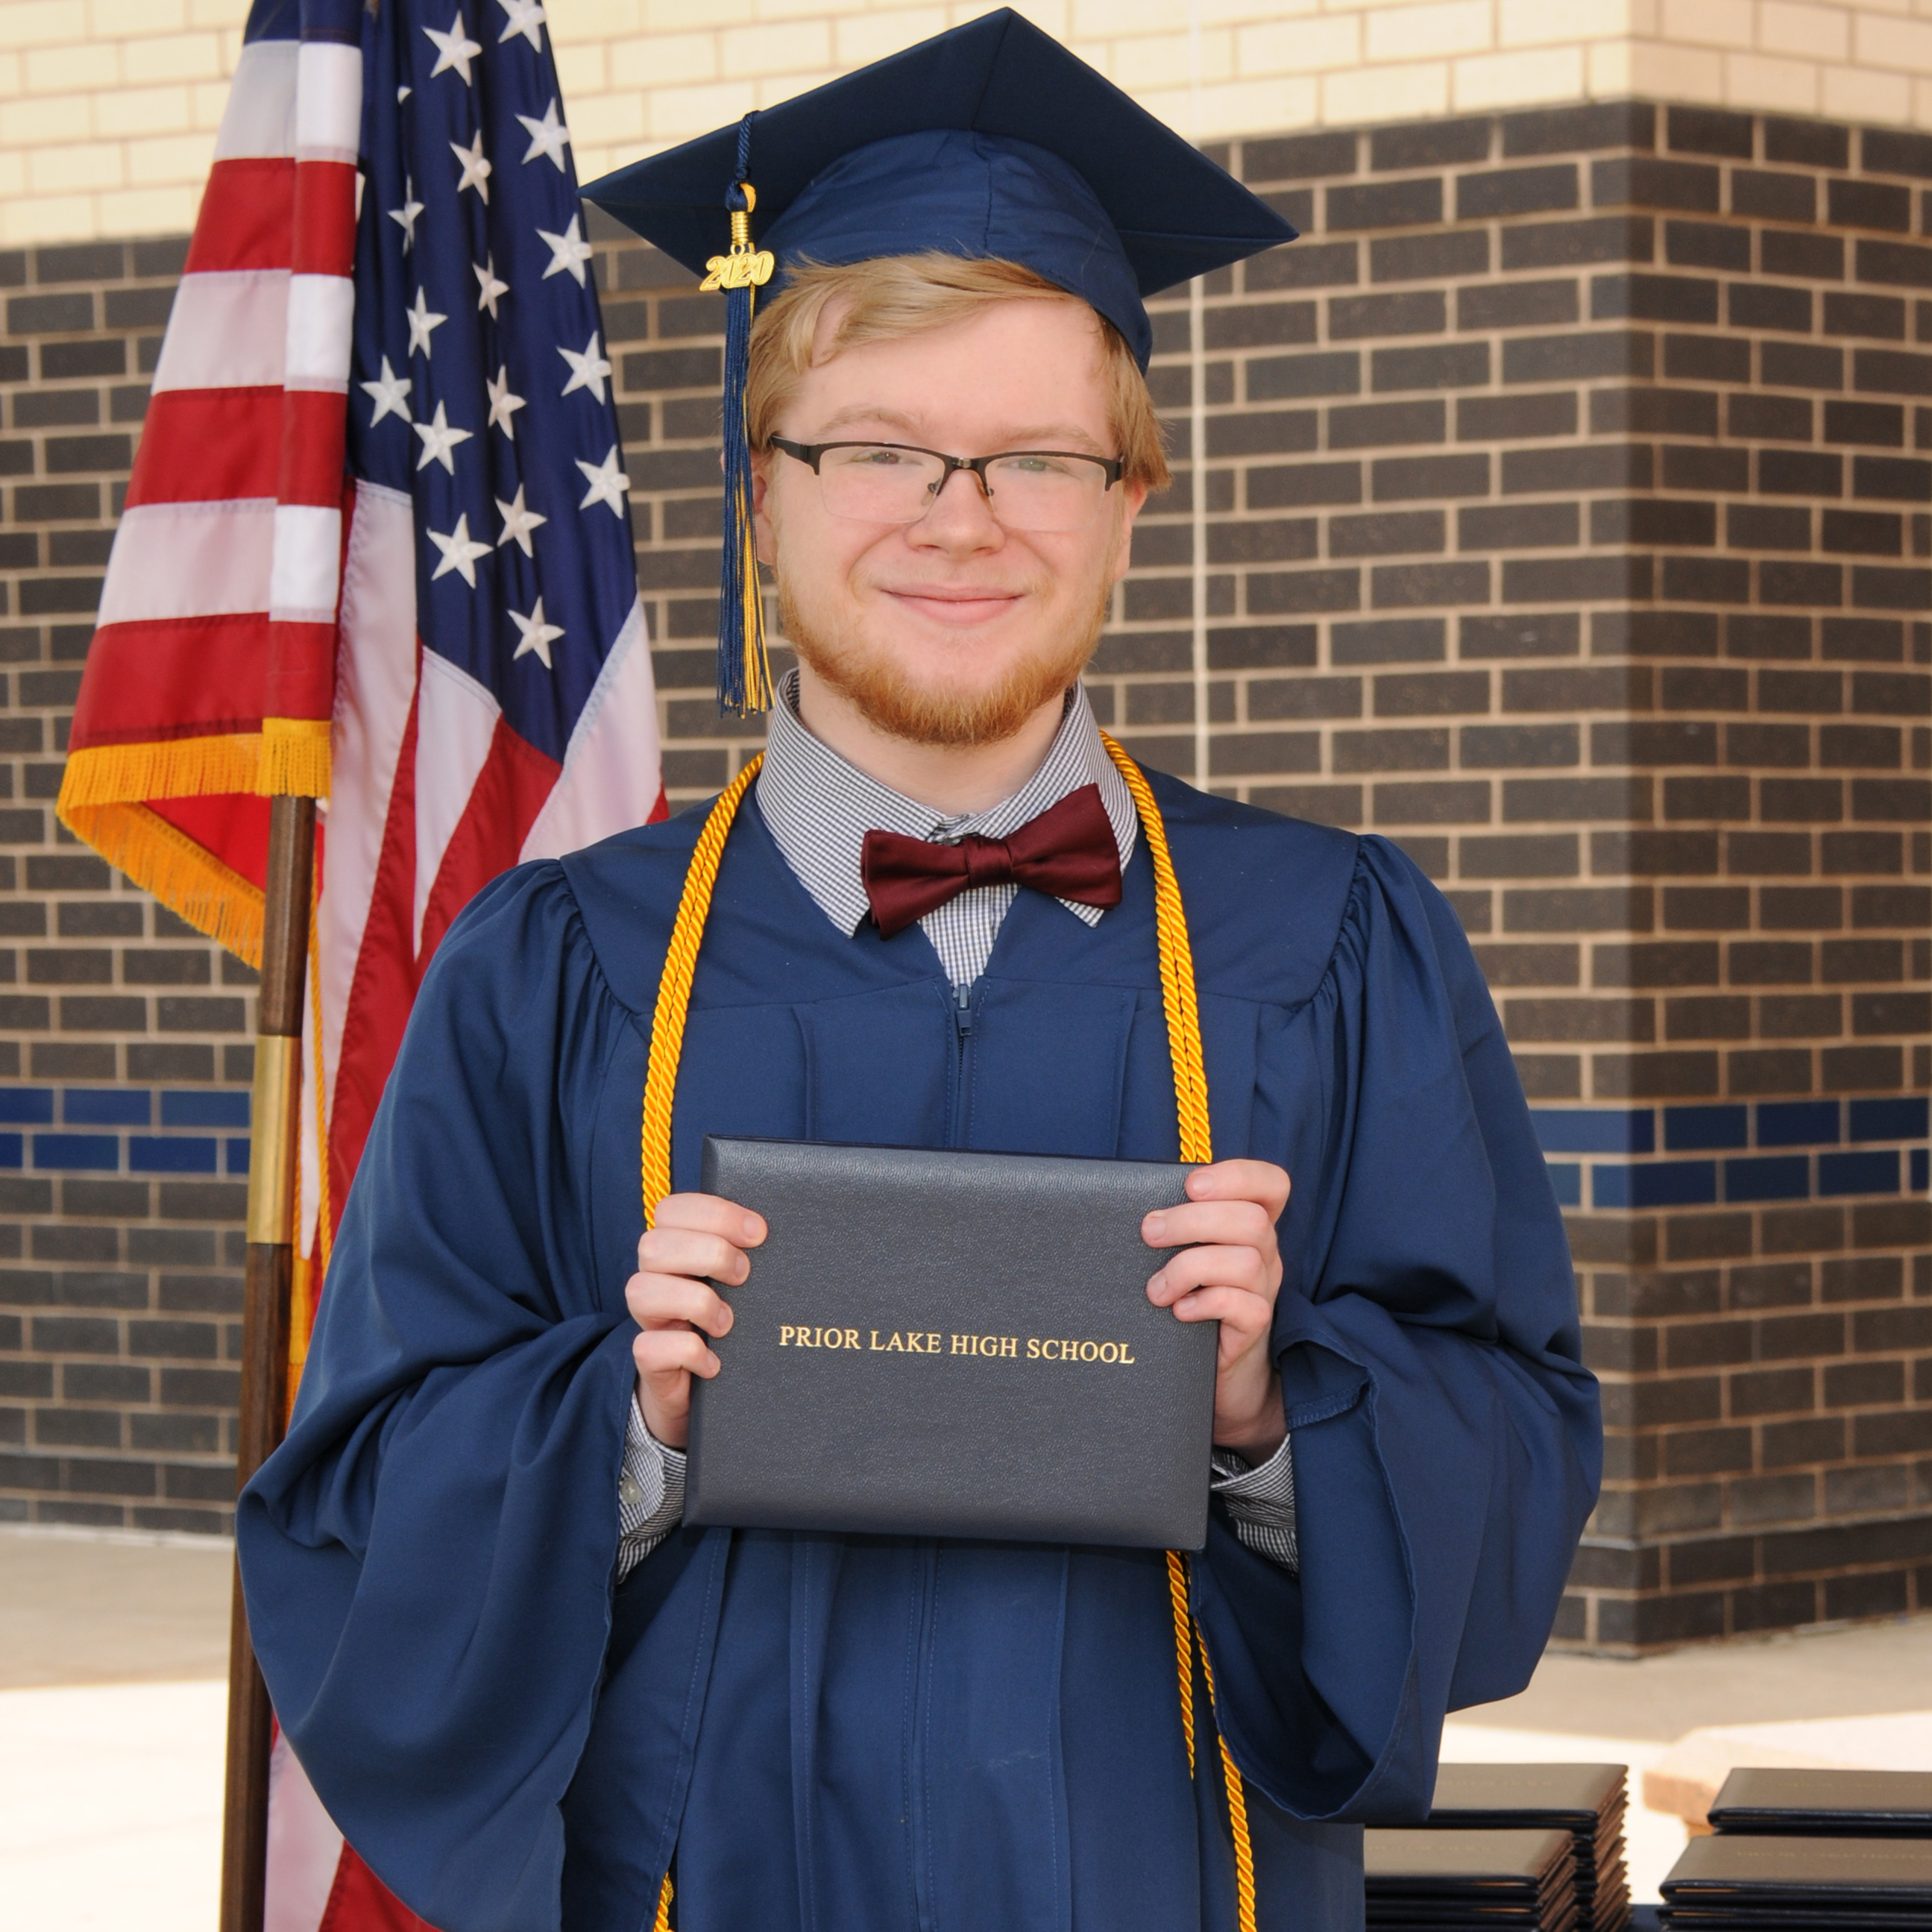 Student in a bow tie, cap and gown, holding up a PLHS diploma folder